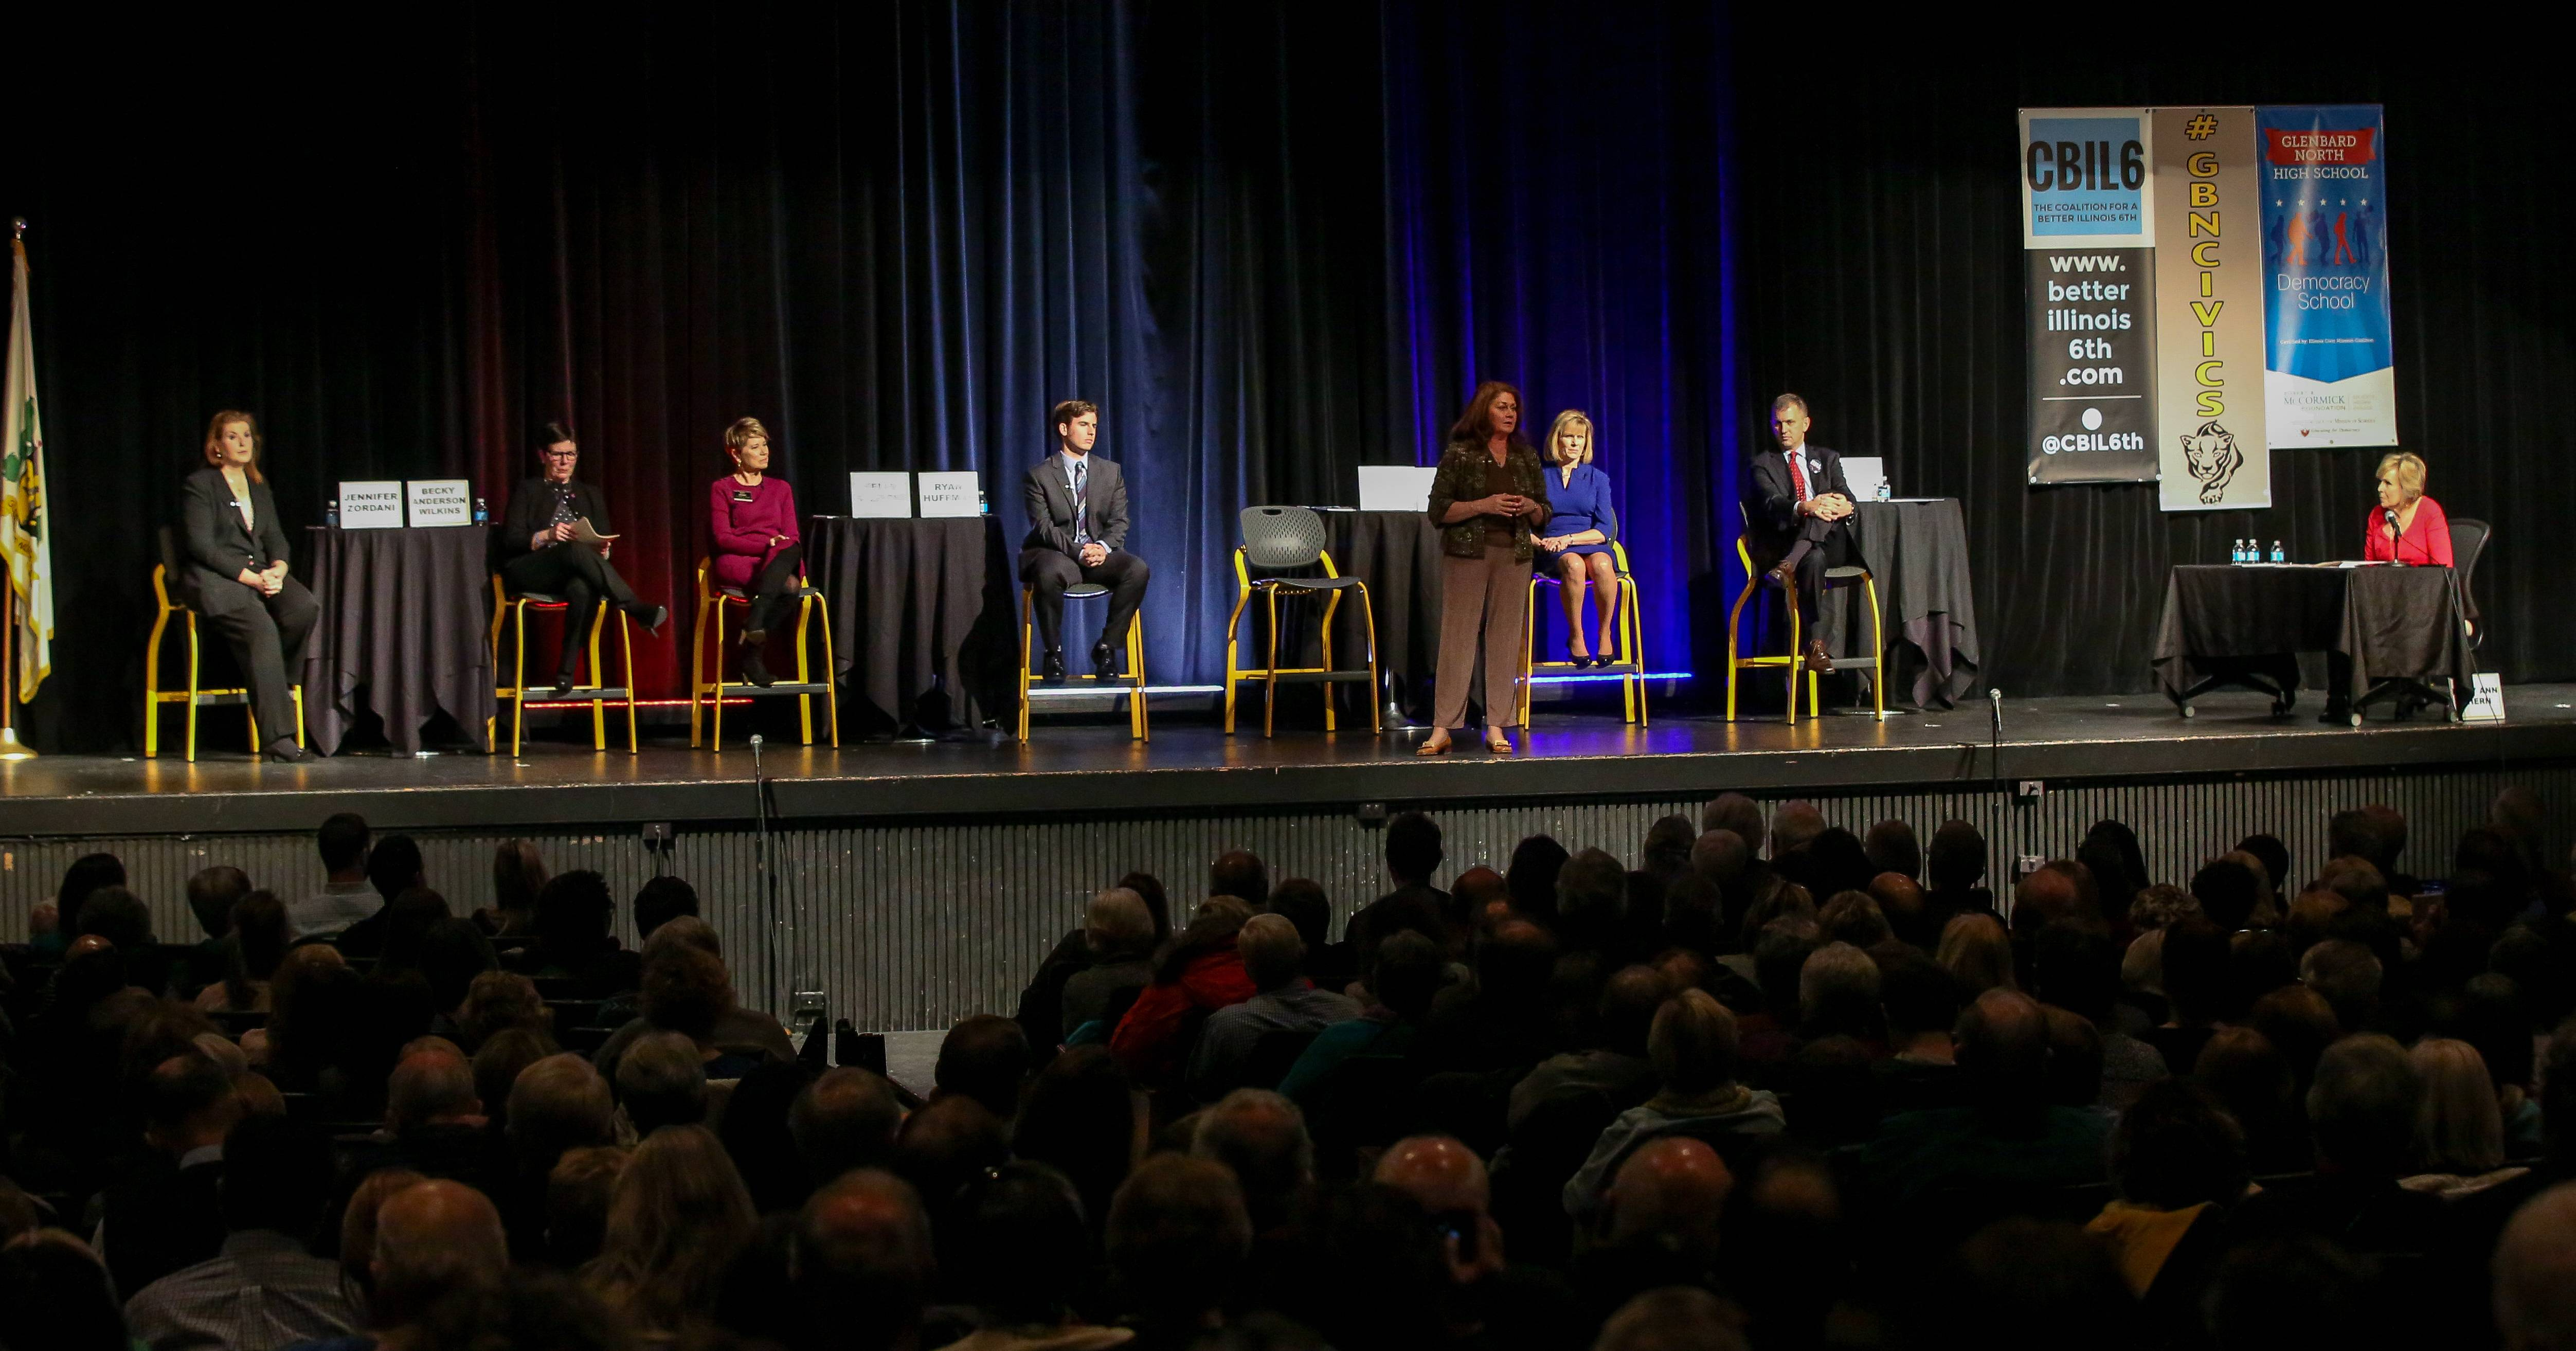 All seven Democrats who want the party's nomination to seek the 6th District seat in U.S. Congress met together in public for the first time this week for a forum in Carol Stream hosted by the Coalition for a Better Illinois 6th and the Glenbard North High School Civics Club.